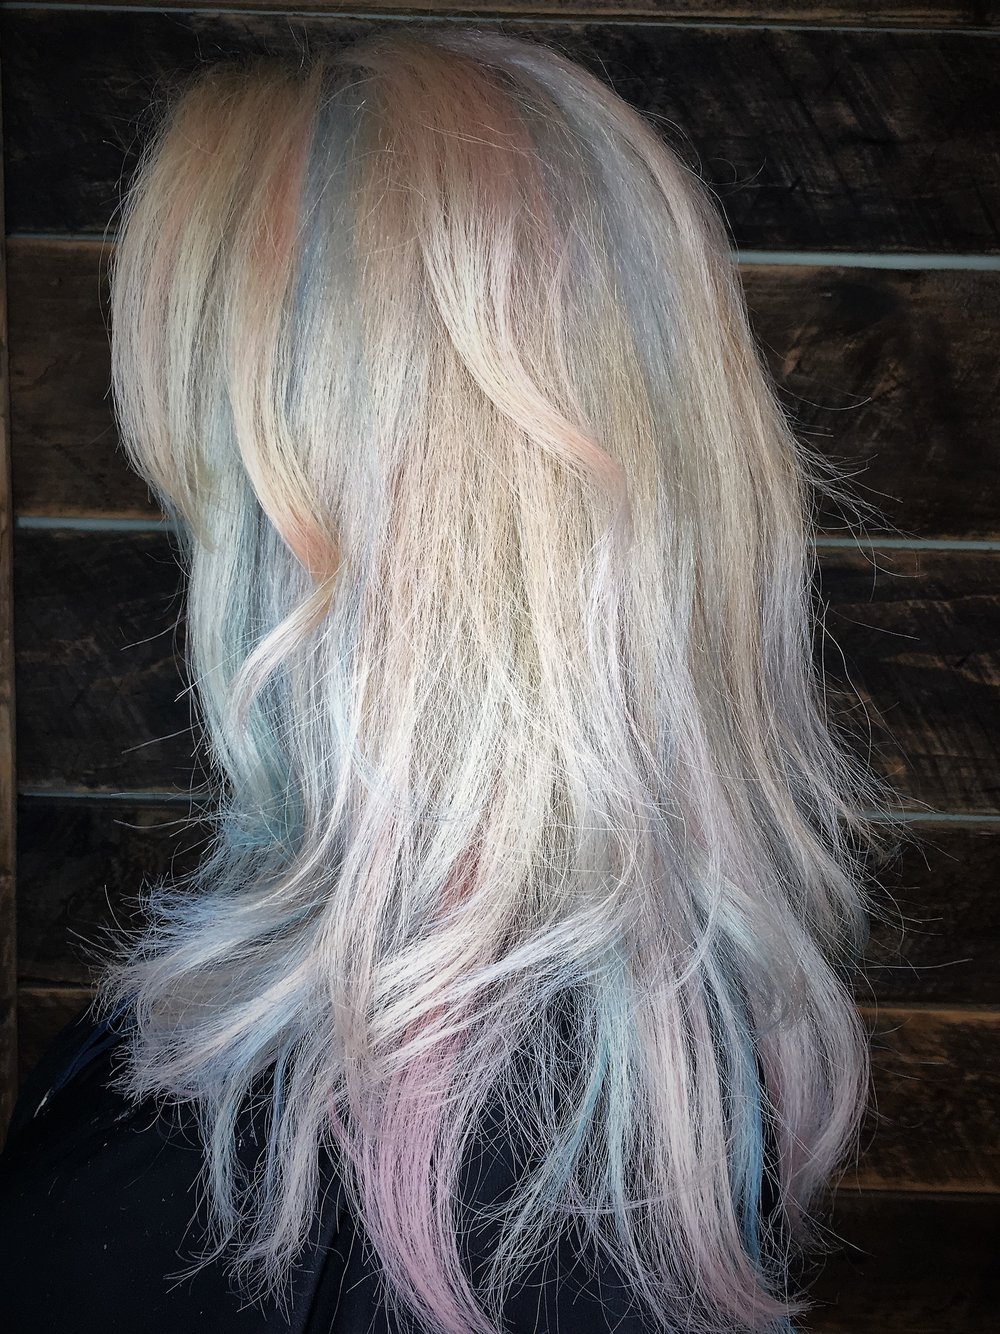 Hair By: Monica P. Watkins. Hair Babe Studio Asheville NC  Frozen Blonde With Pastel Ribbons  Cascading ribbons of baby blue, peach and pale pink add whimsy to icy blonde.